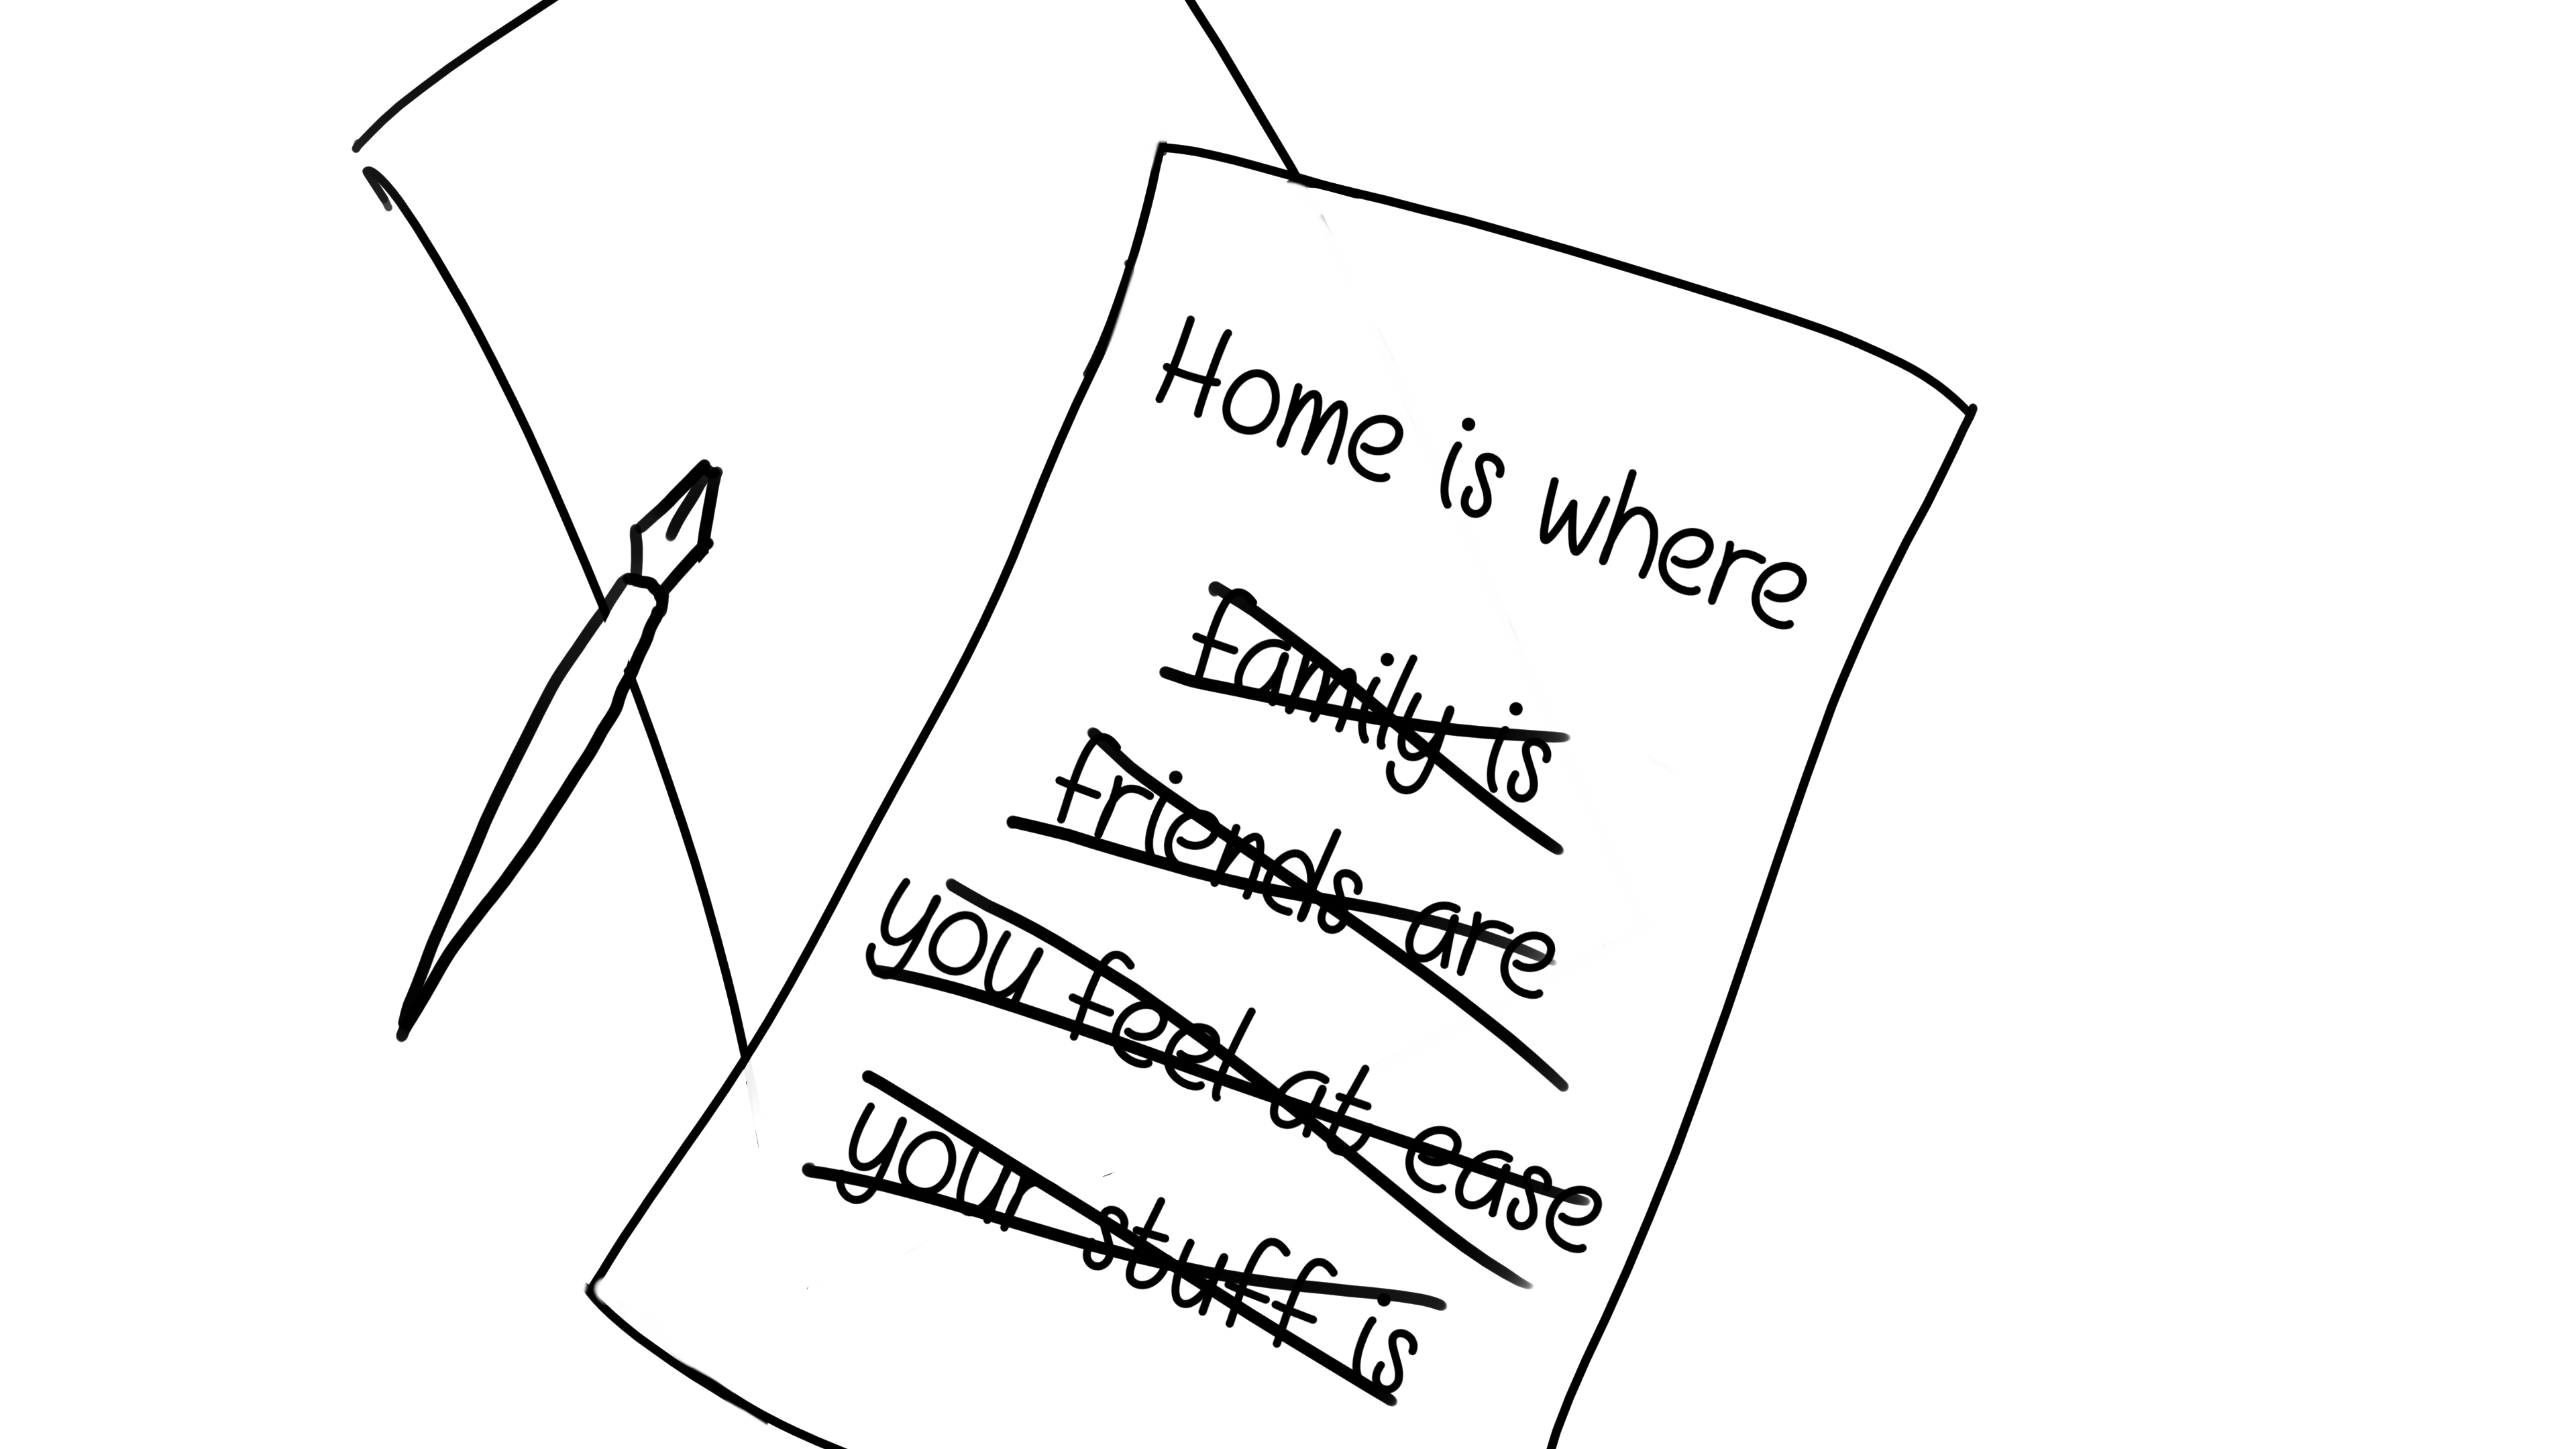 Home is where X